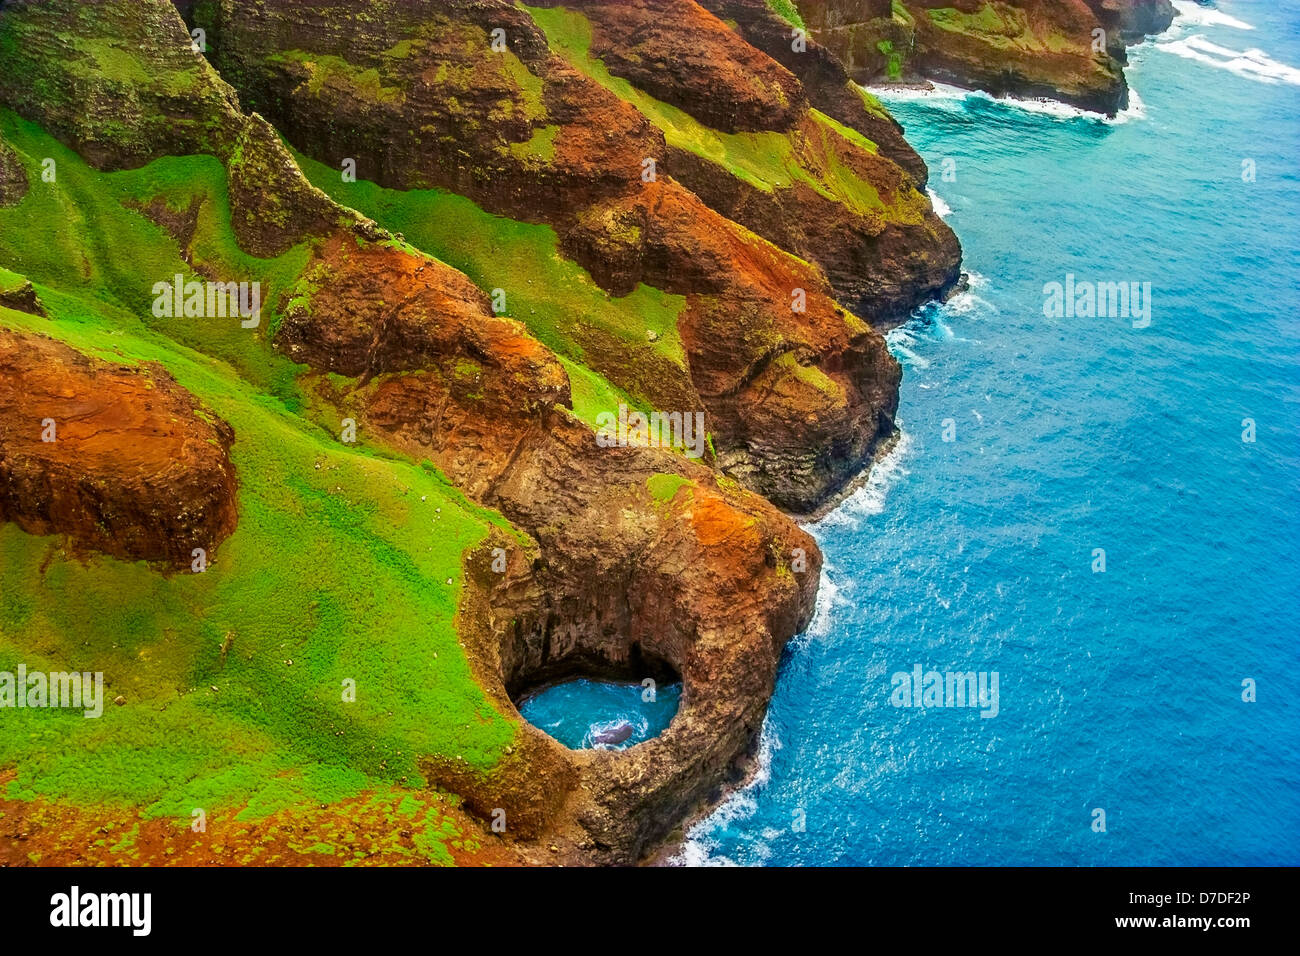 Na Pali Coast View, Kauai, Hawaii, USA - Stock Image